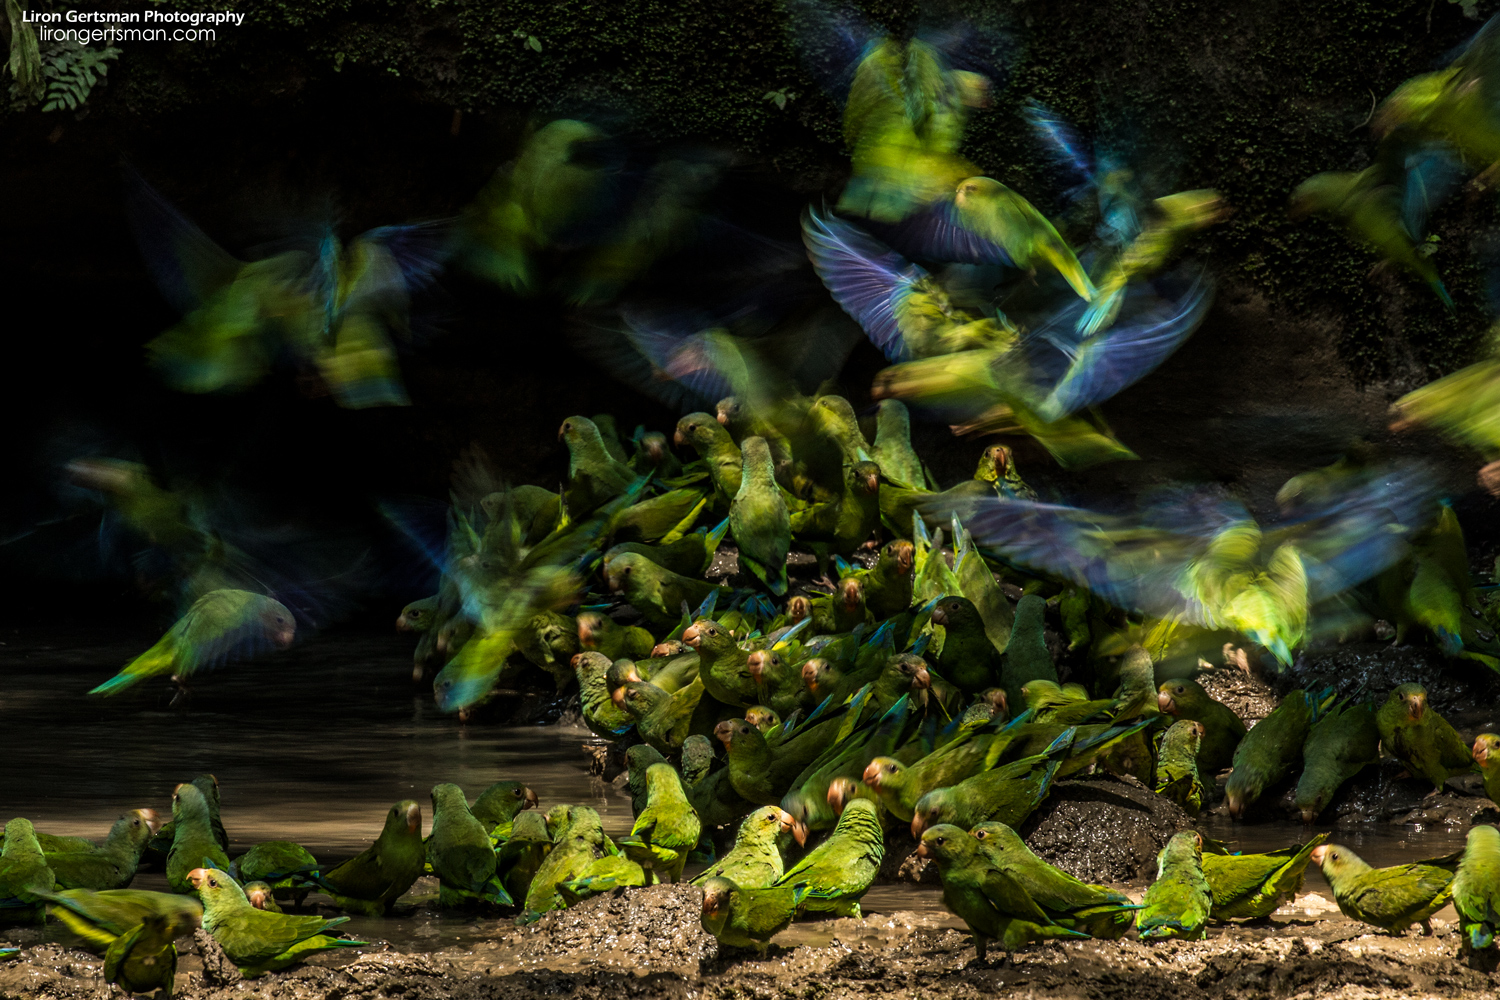 Parakeets continue flying down to join an increasingly large group already on the ground. A magical sight! This image won the youth category of the Audubon Photo Awards in 2018.